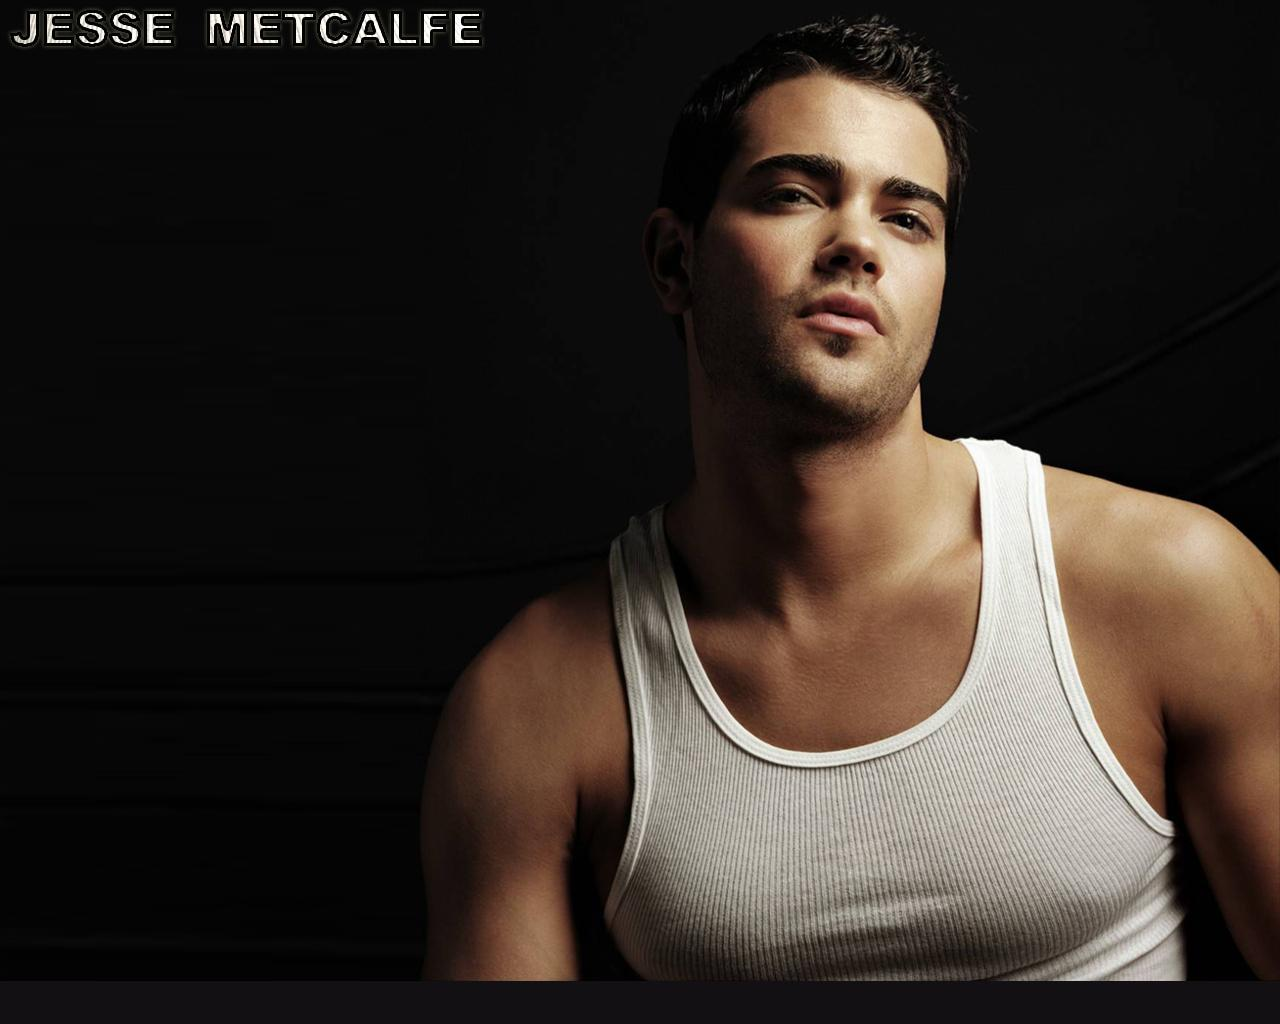 cat love jesse metcalfe